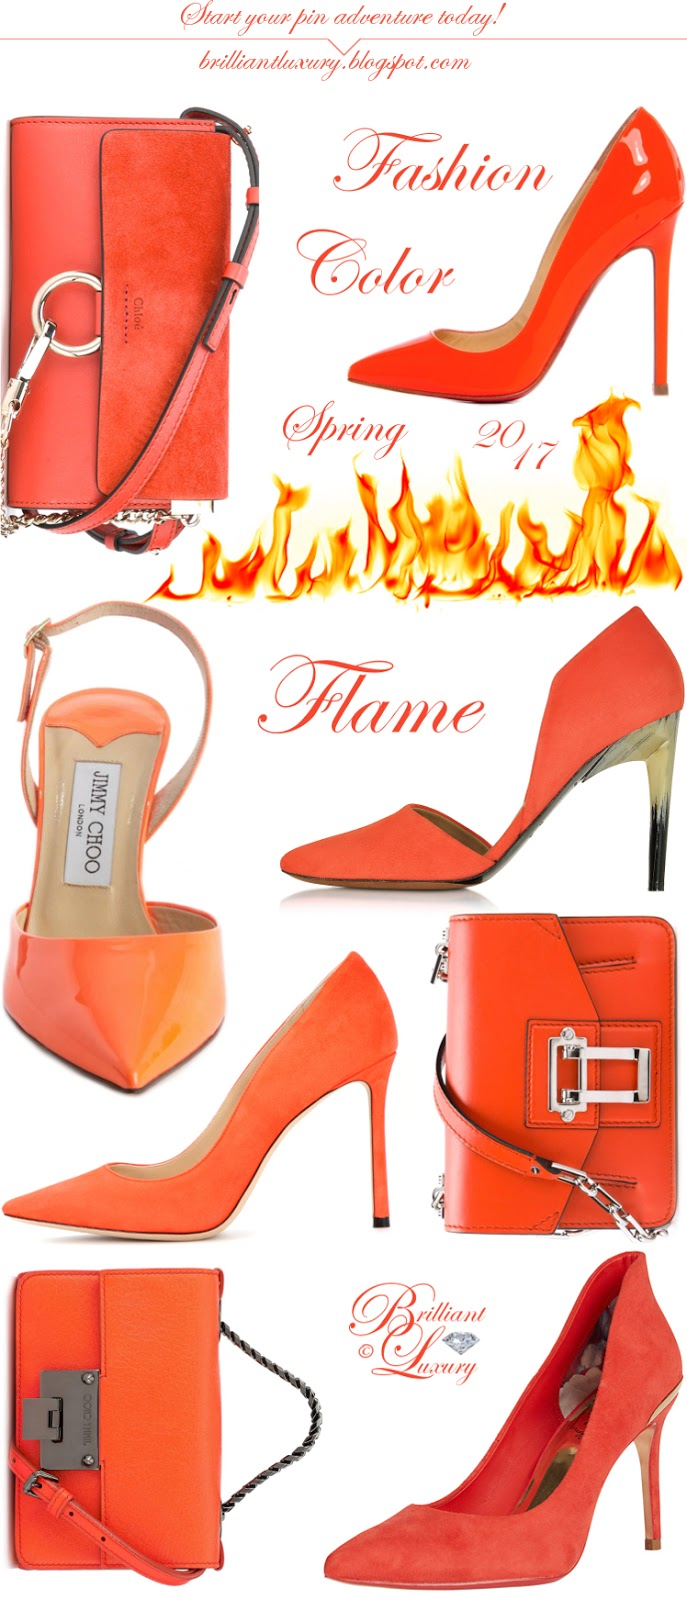 Brilliant Luxury ♦ Fashion Color Spring 2017 ~ flame